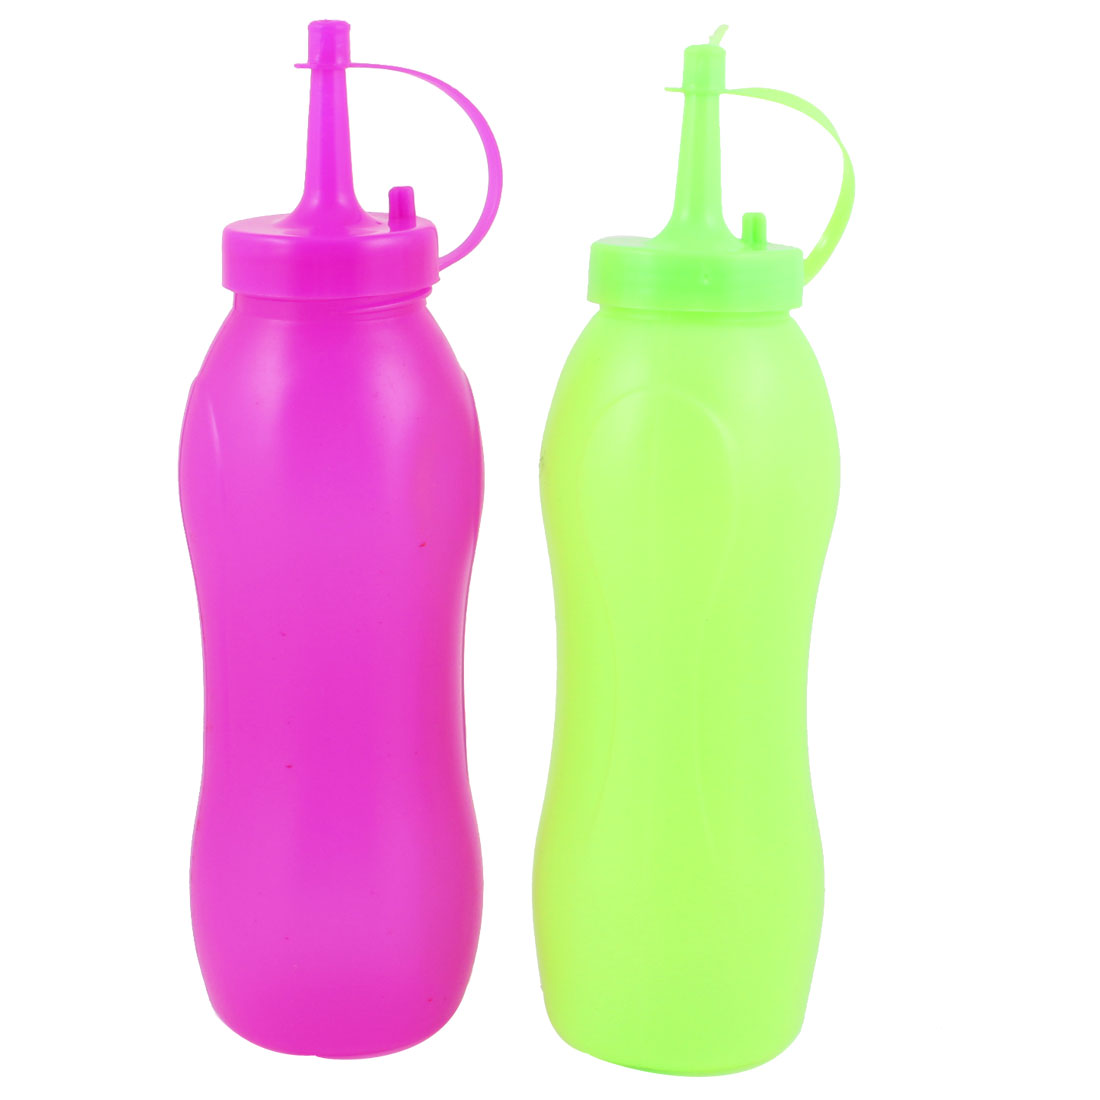 300ml Plastic Butter Sauce Condiment Dispenser Bottle Pair Fuchsia Light Green